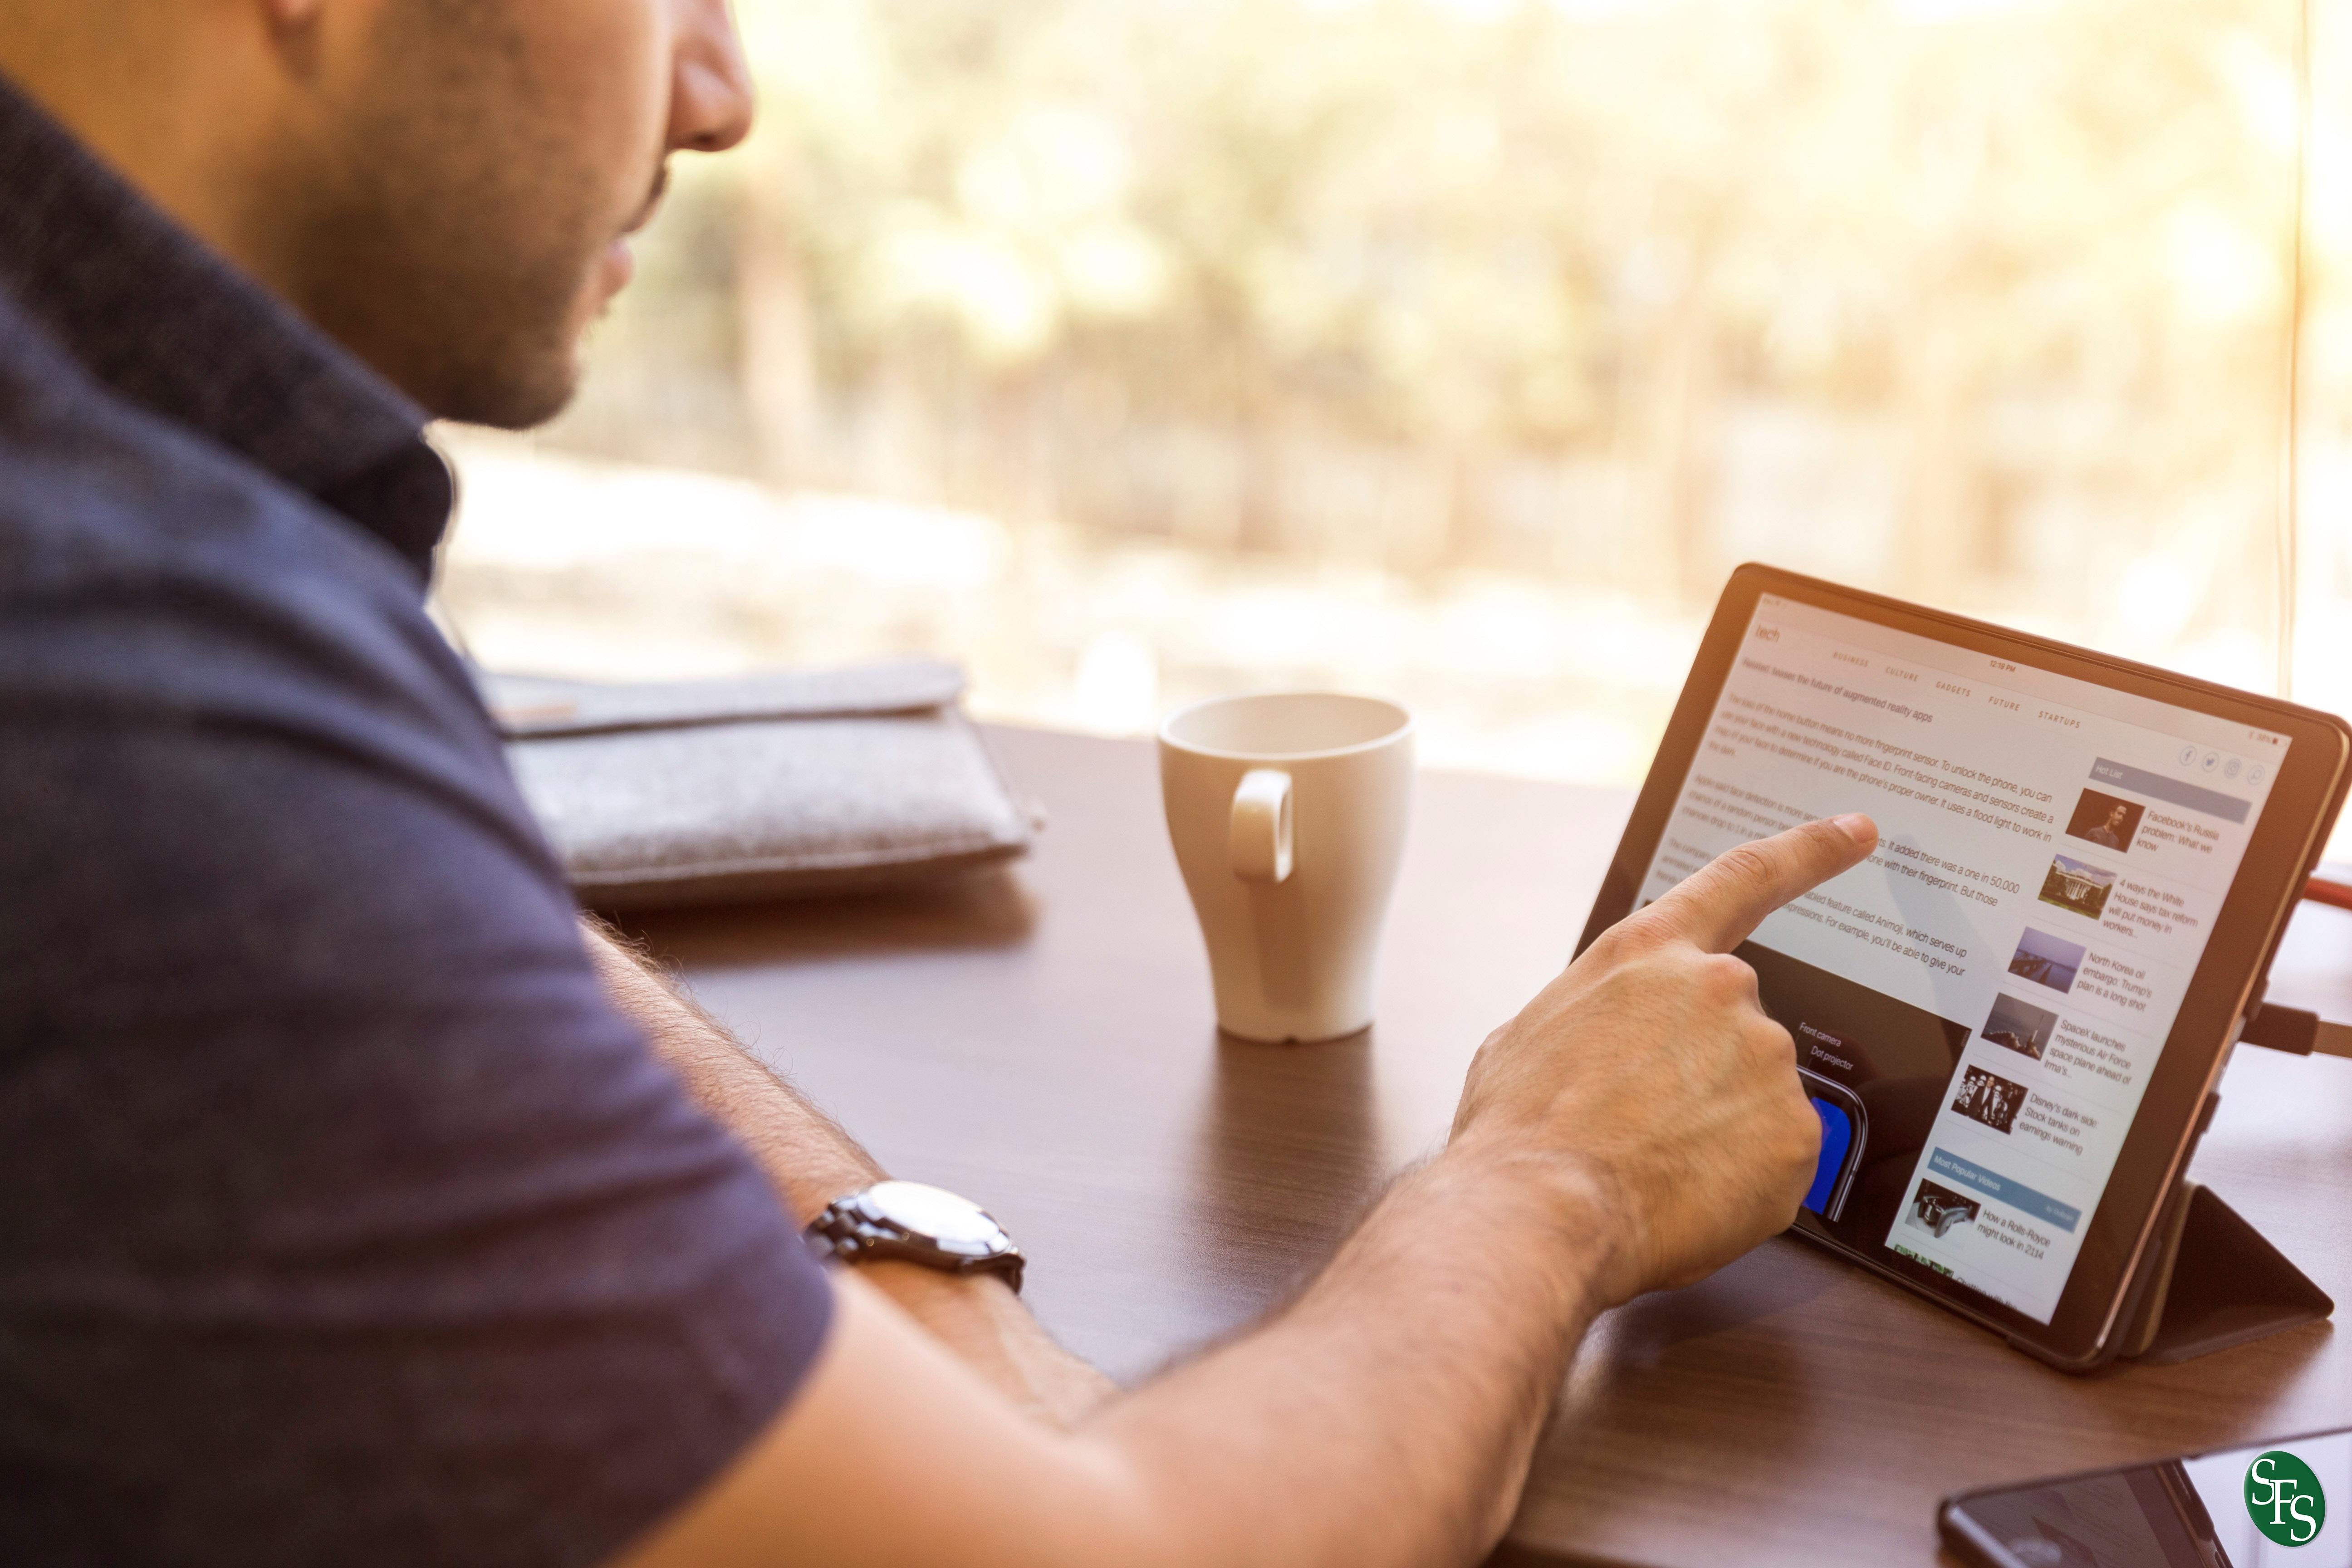 4 Tips on Safely Donating Online, man, ipad, coffee, table